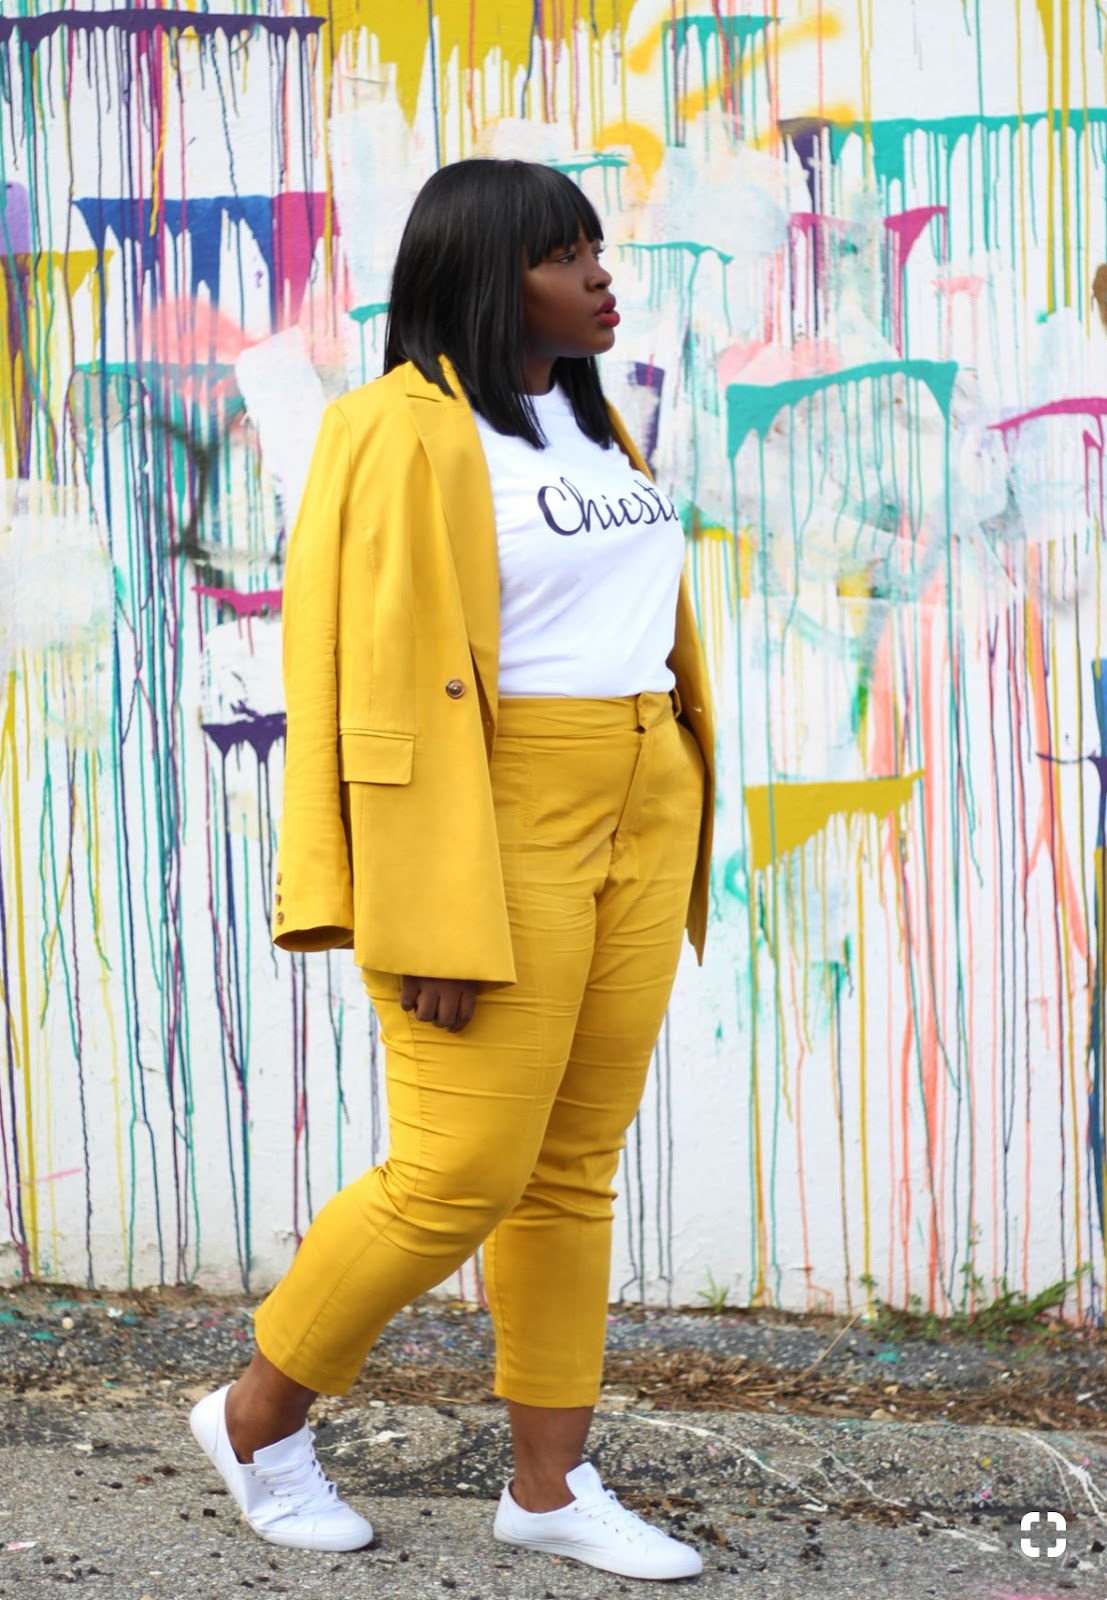 A woman is wearing a bright yellow blazer and cropped pants